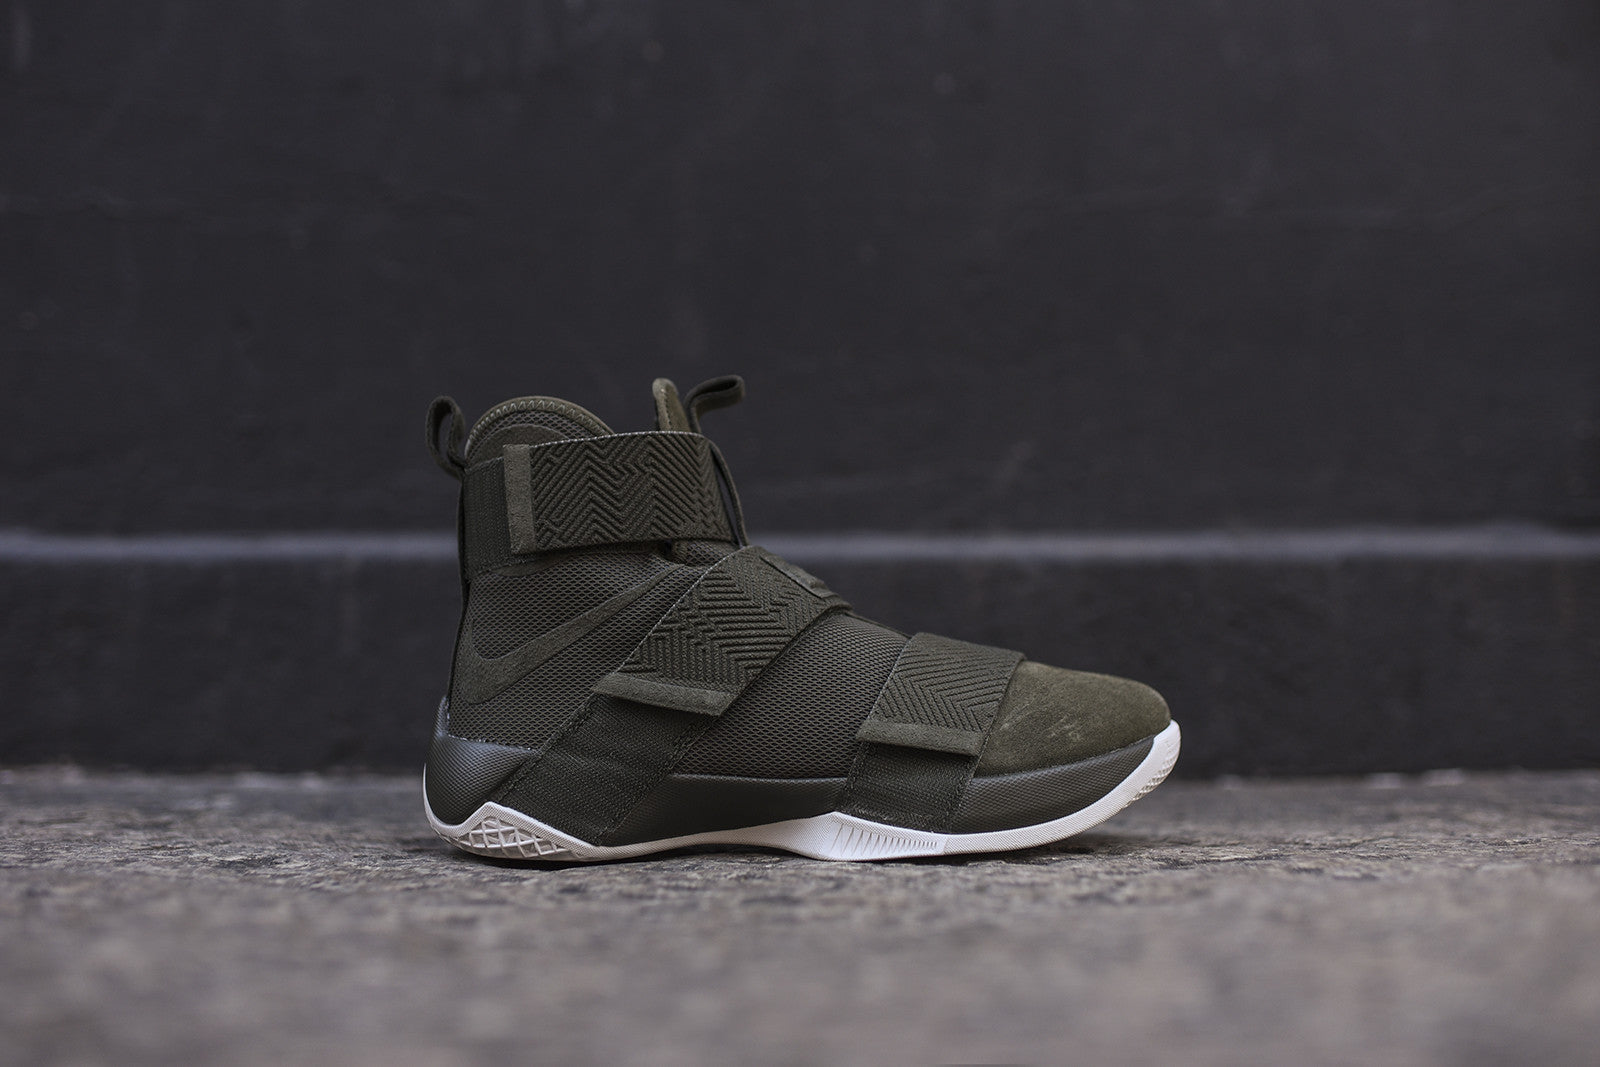 Nike LeBron Soldier X SFG LUX - Olive